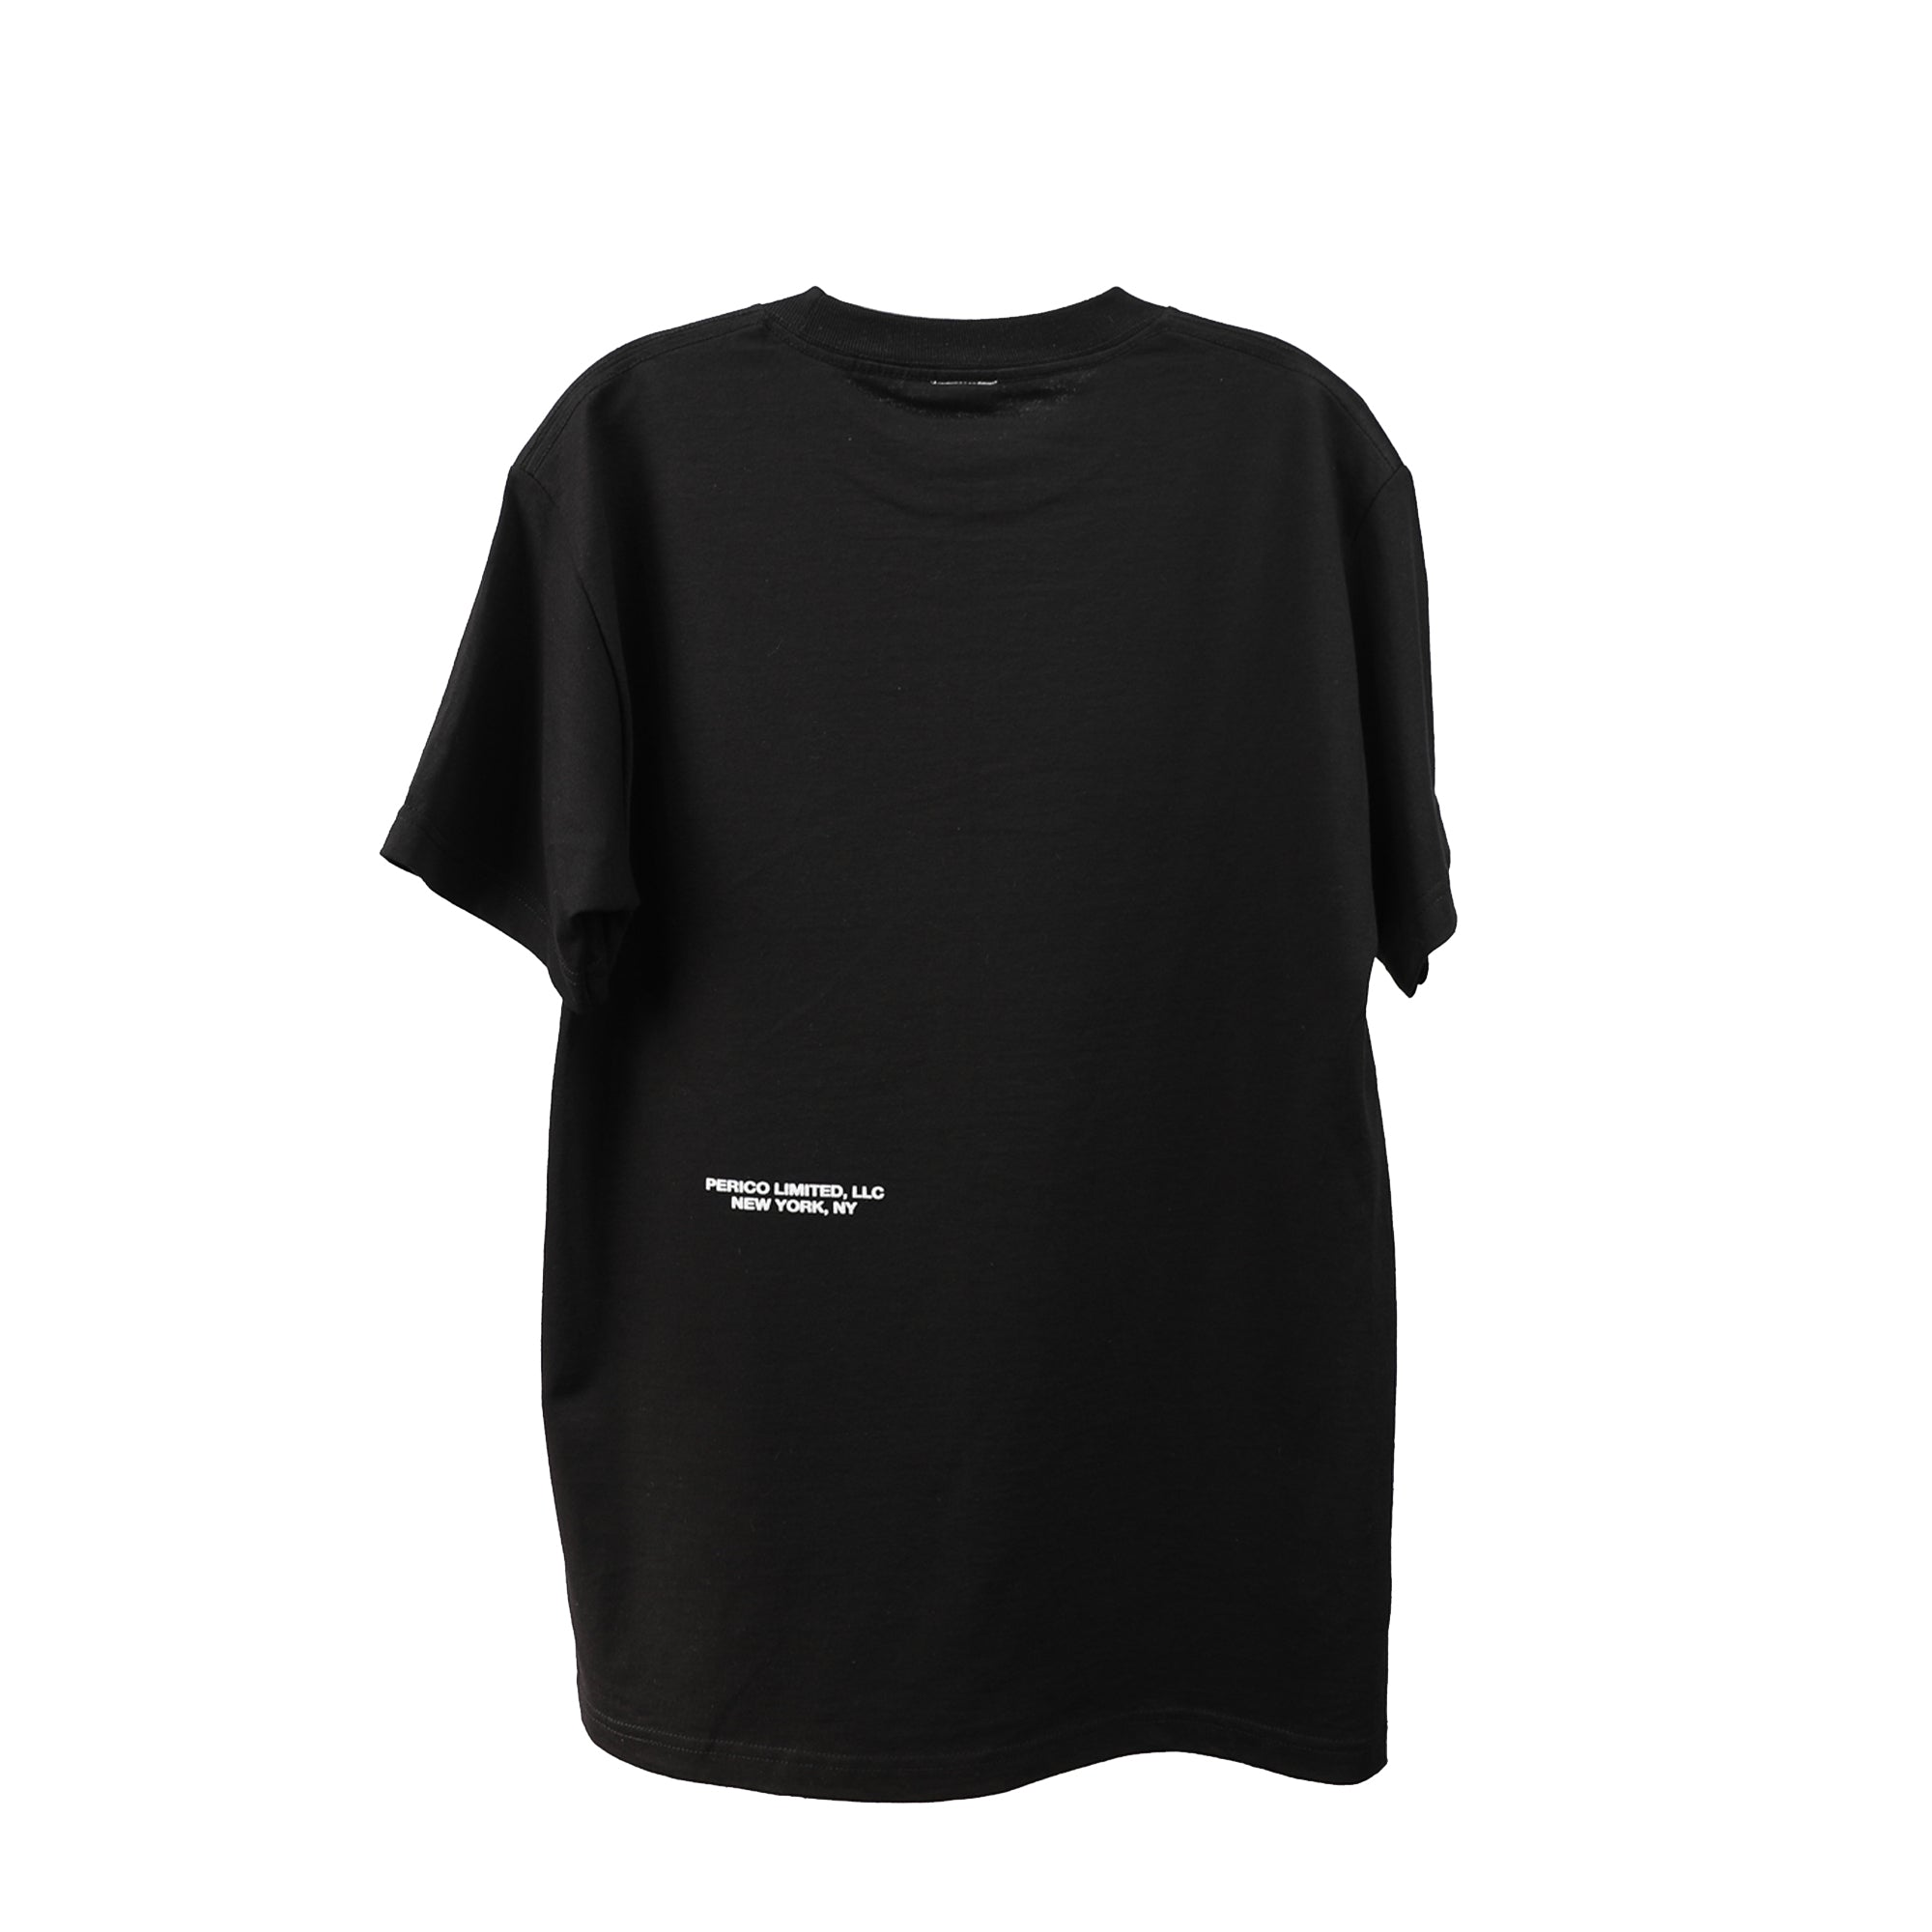 Heights Smiley - Black S/S